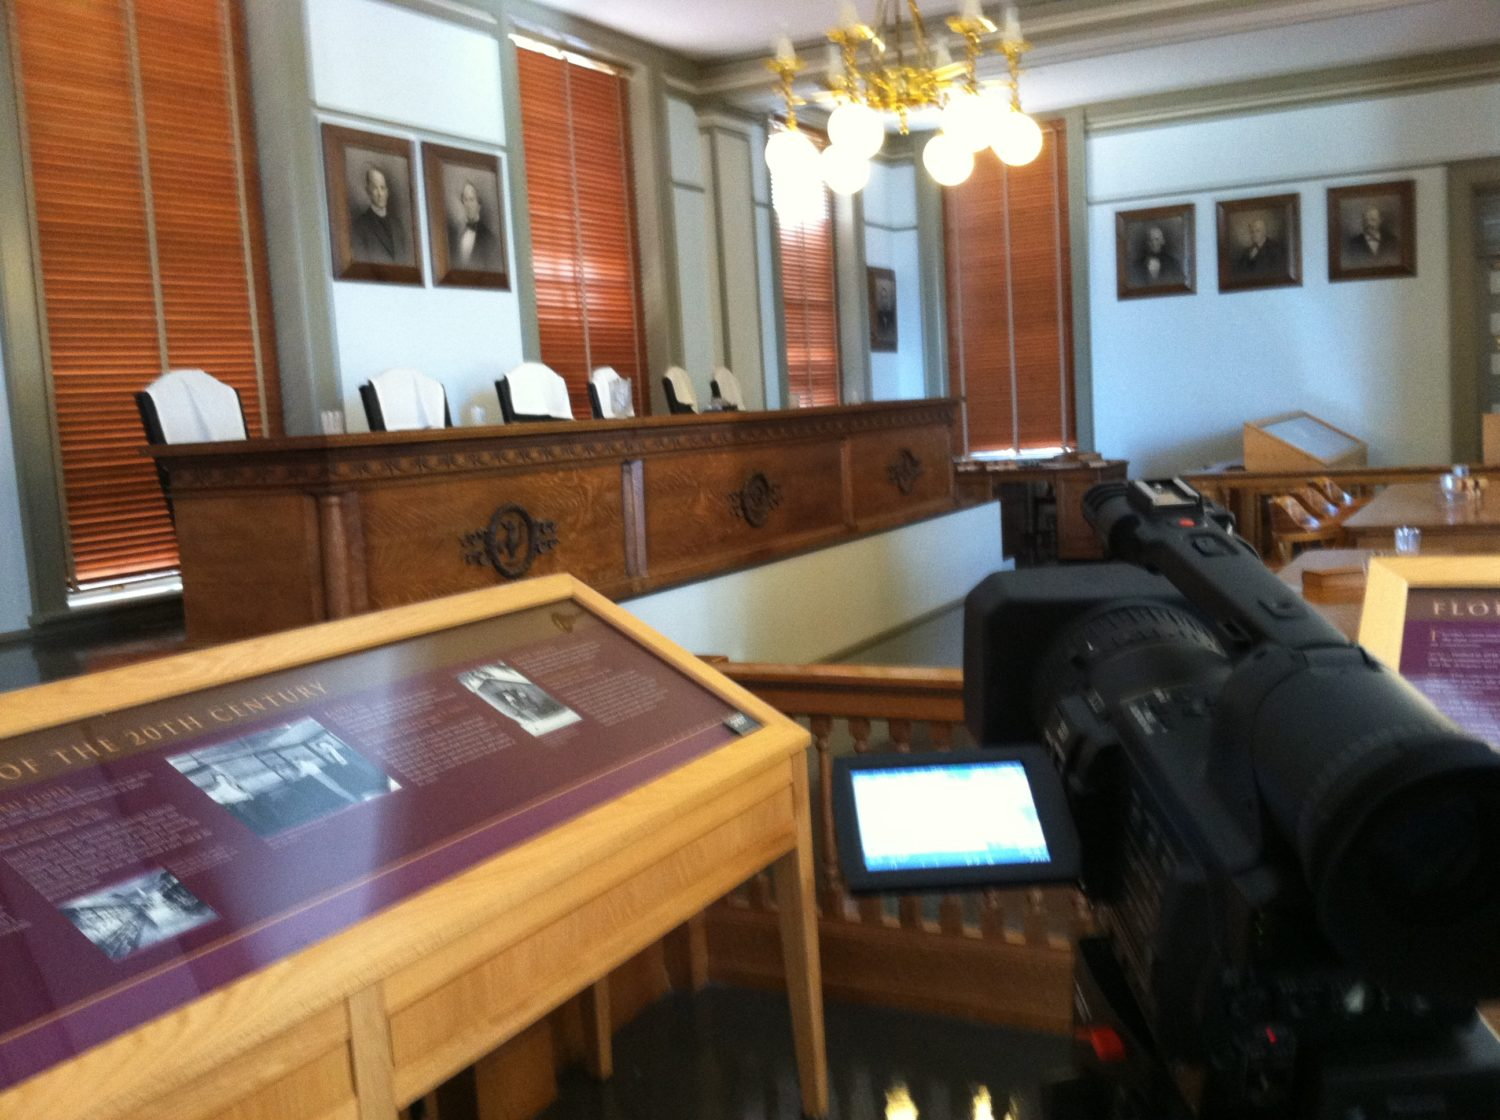 Filming in the Old Florida Supreme Courtroom